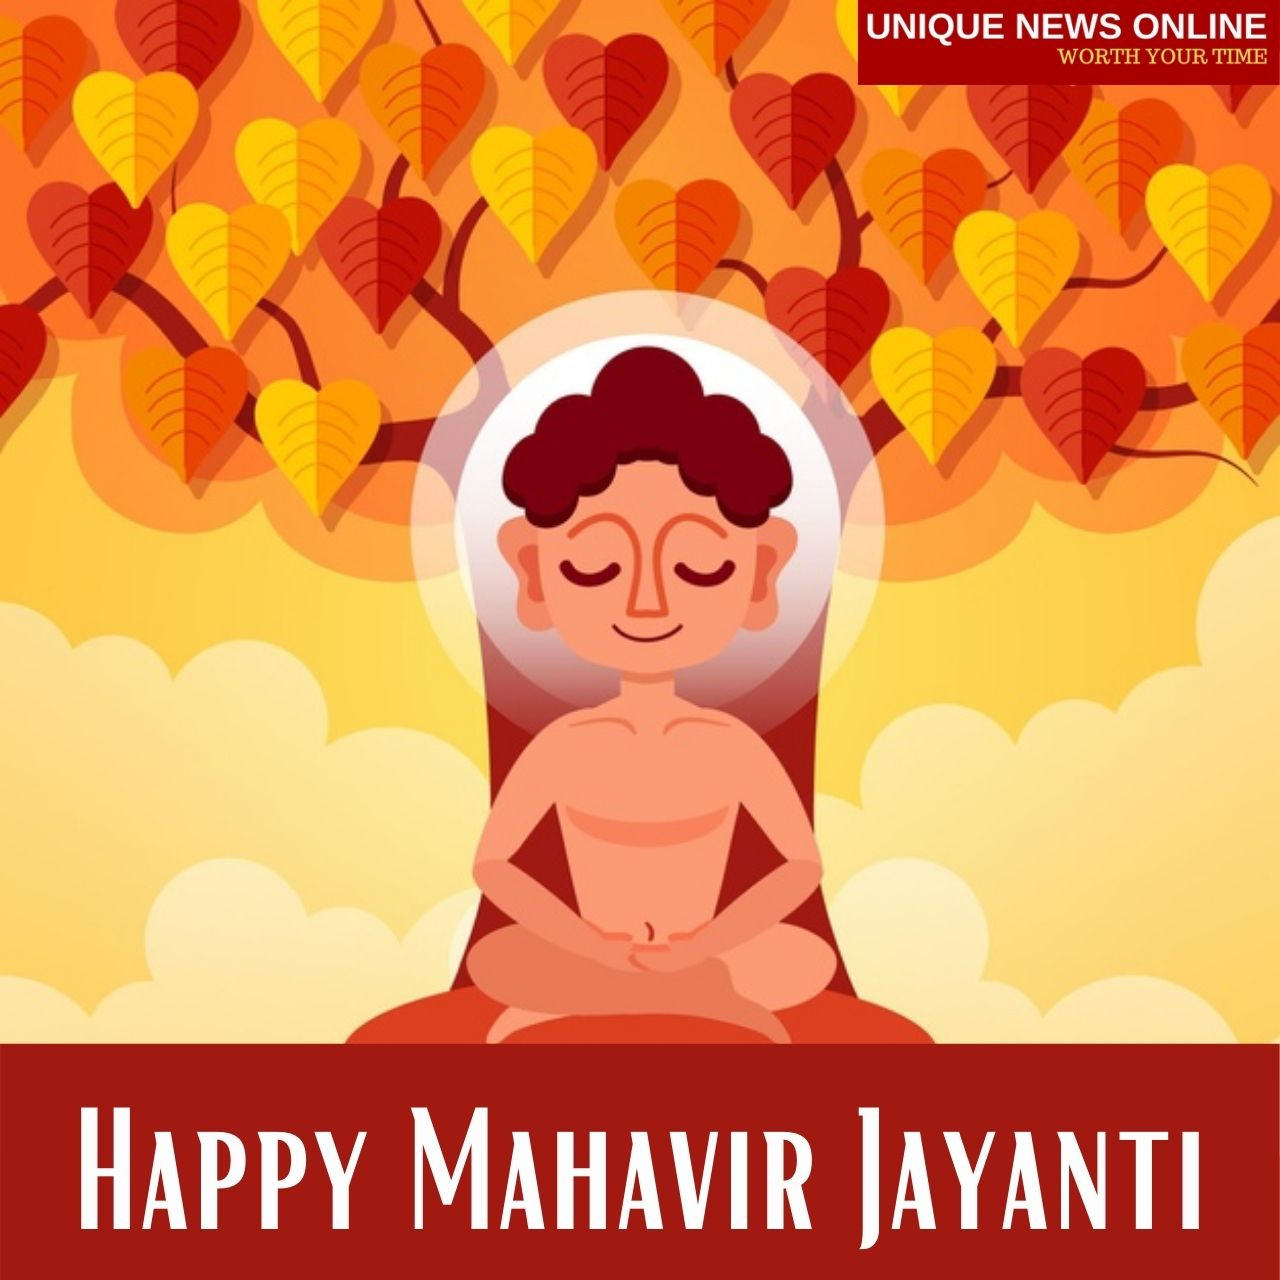 Happy Mahavir Jayanti 2021 WhatsApp Status Video Download for Mahavir Janma Kalyanak